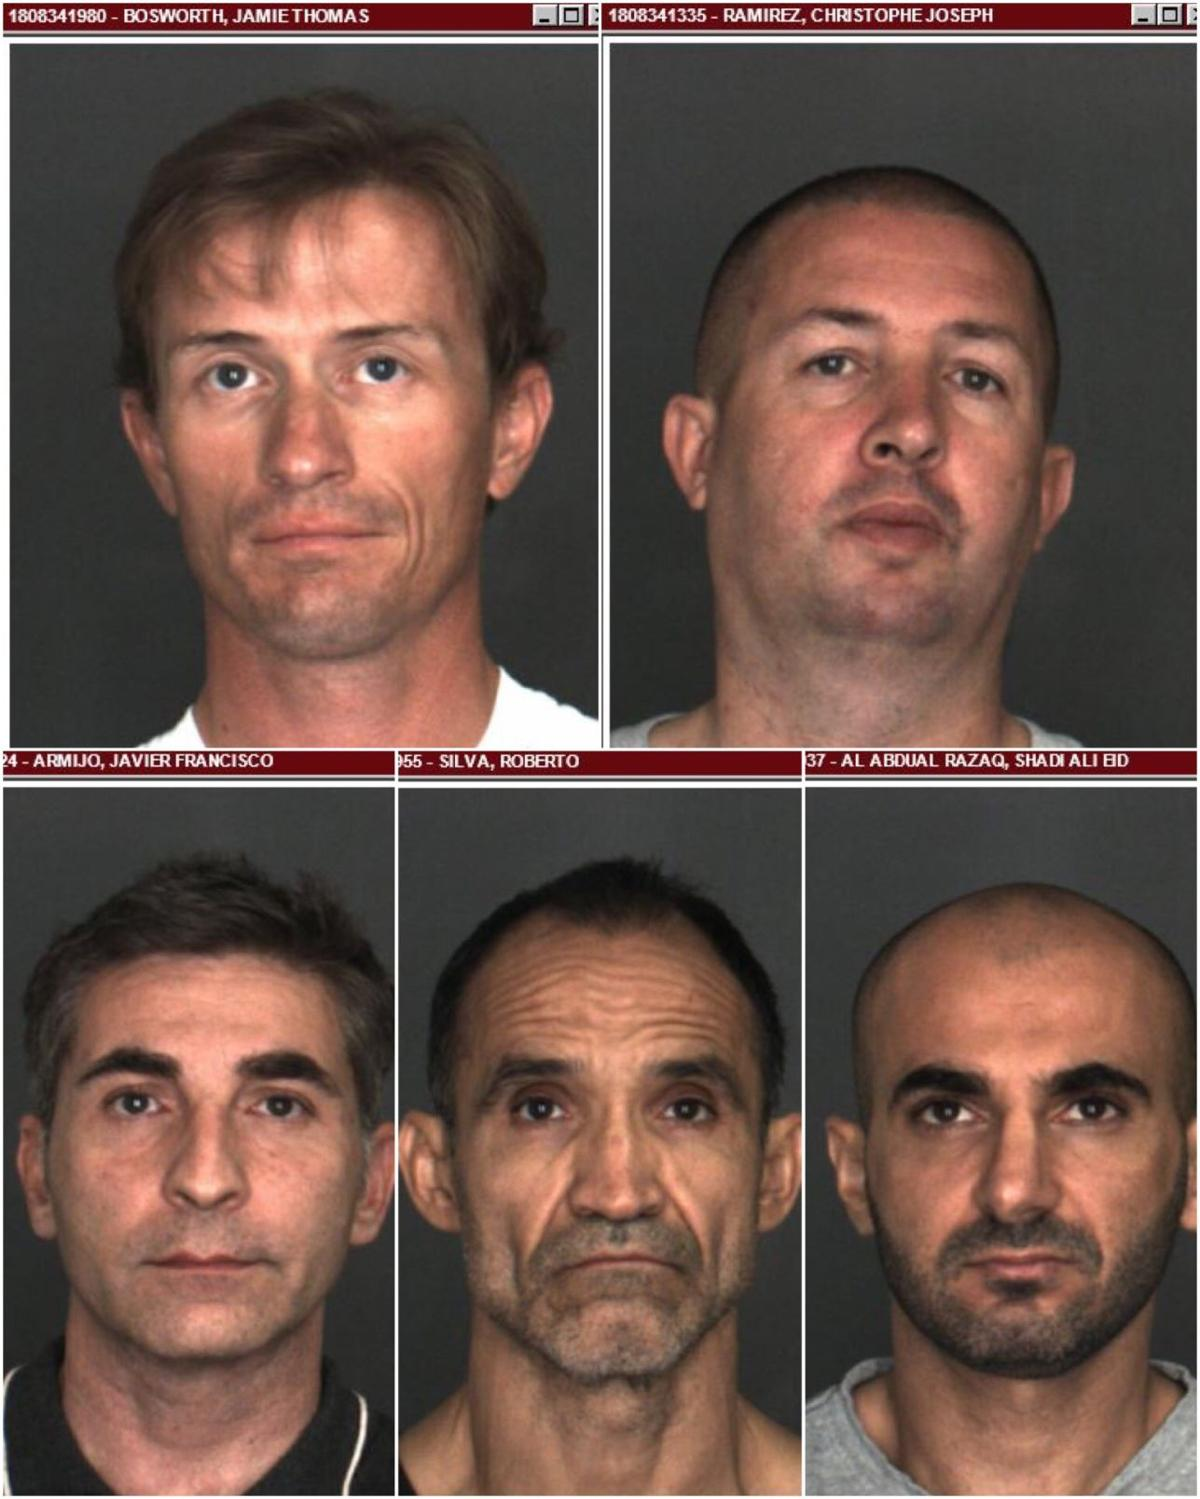 Nine men are arrested for allegedly attempting to meet a